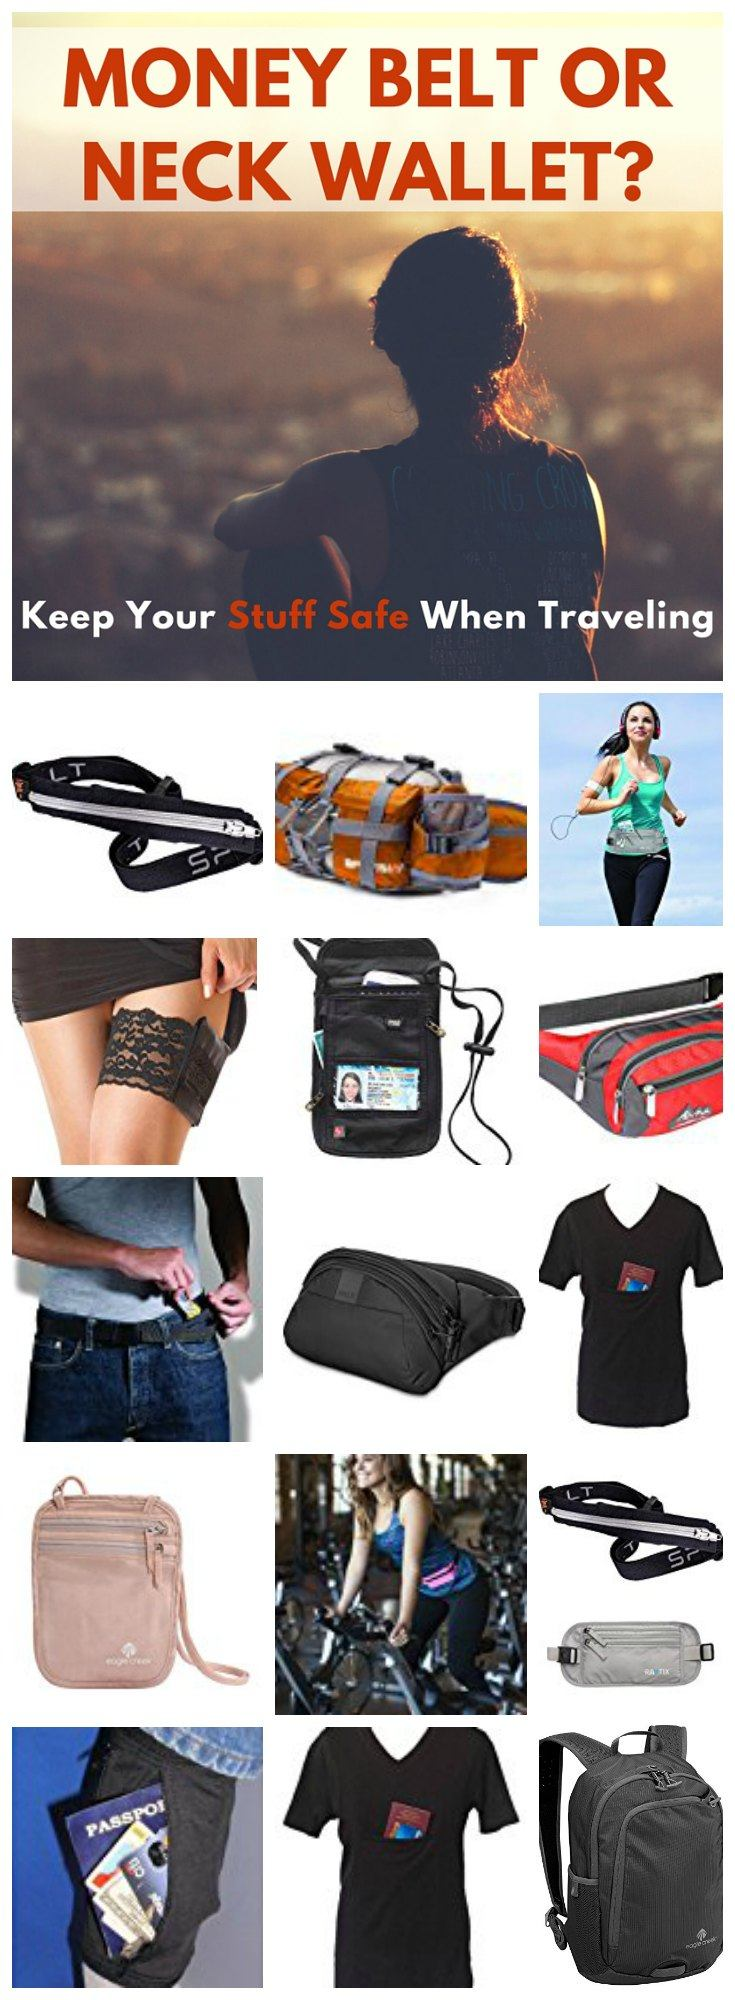 Money Belt or Neck Wallet - Reviews and Alternatives to Keep Your Stuff Safe When Traveling